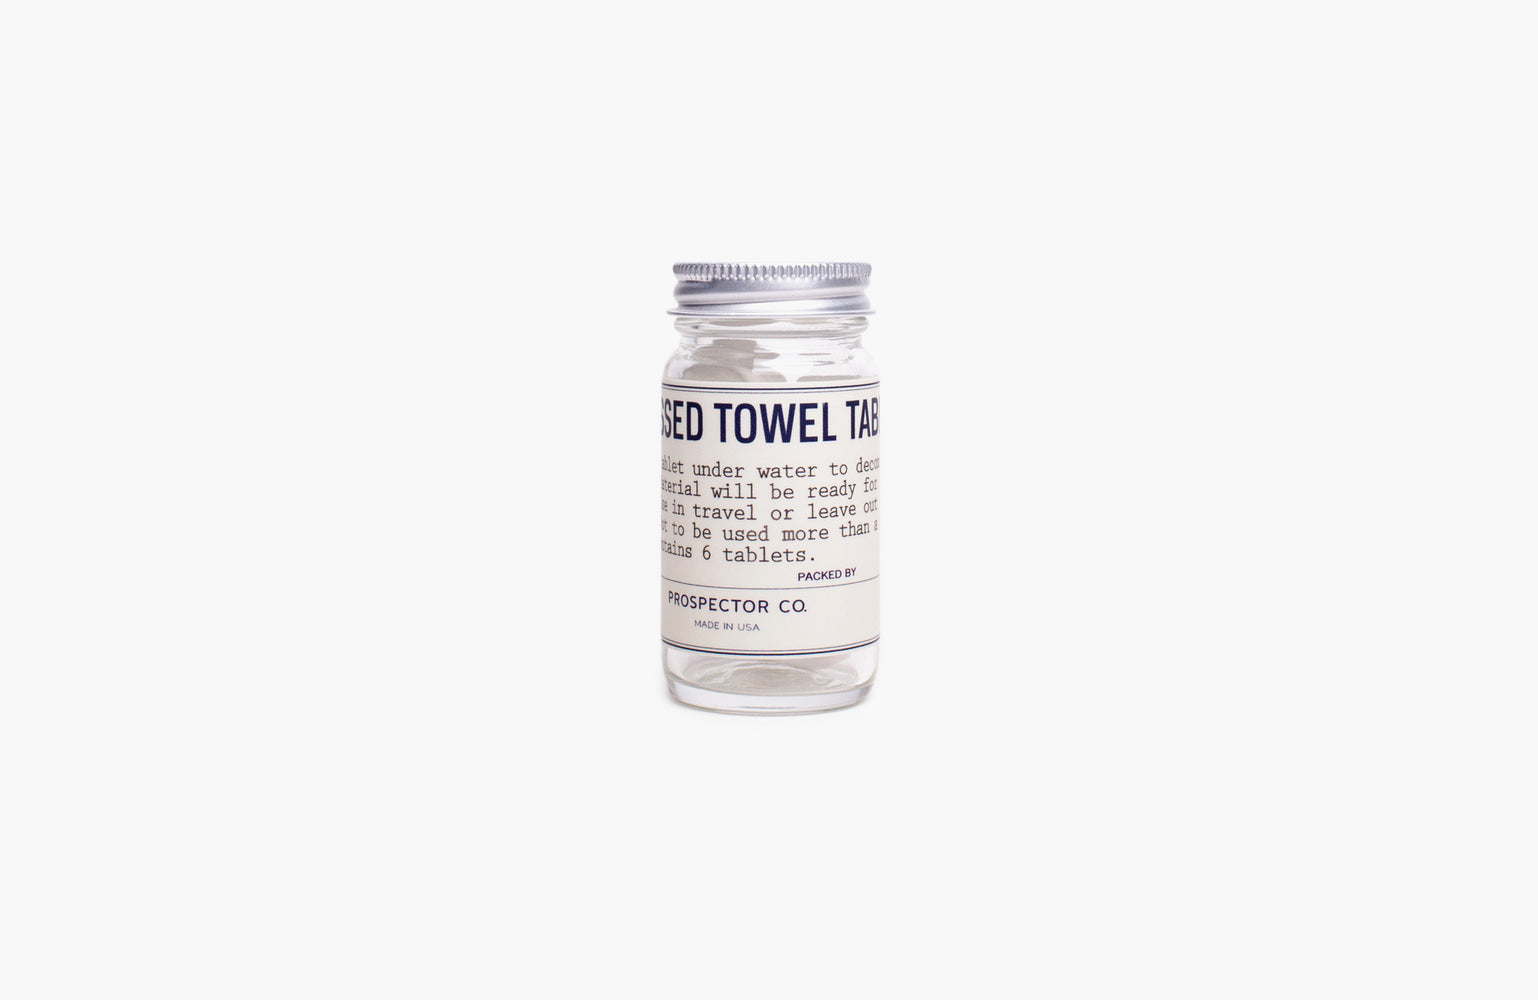 Prospector & Co. / Compressed Towel Tablets